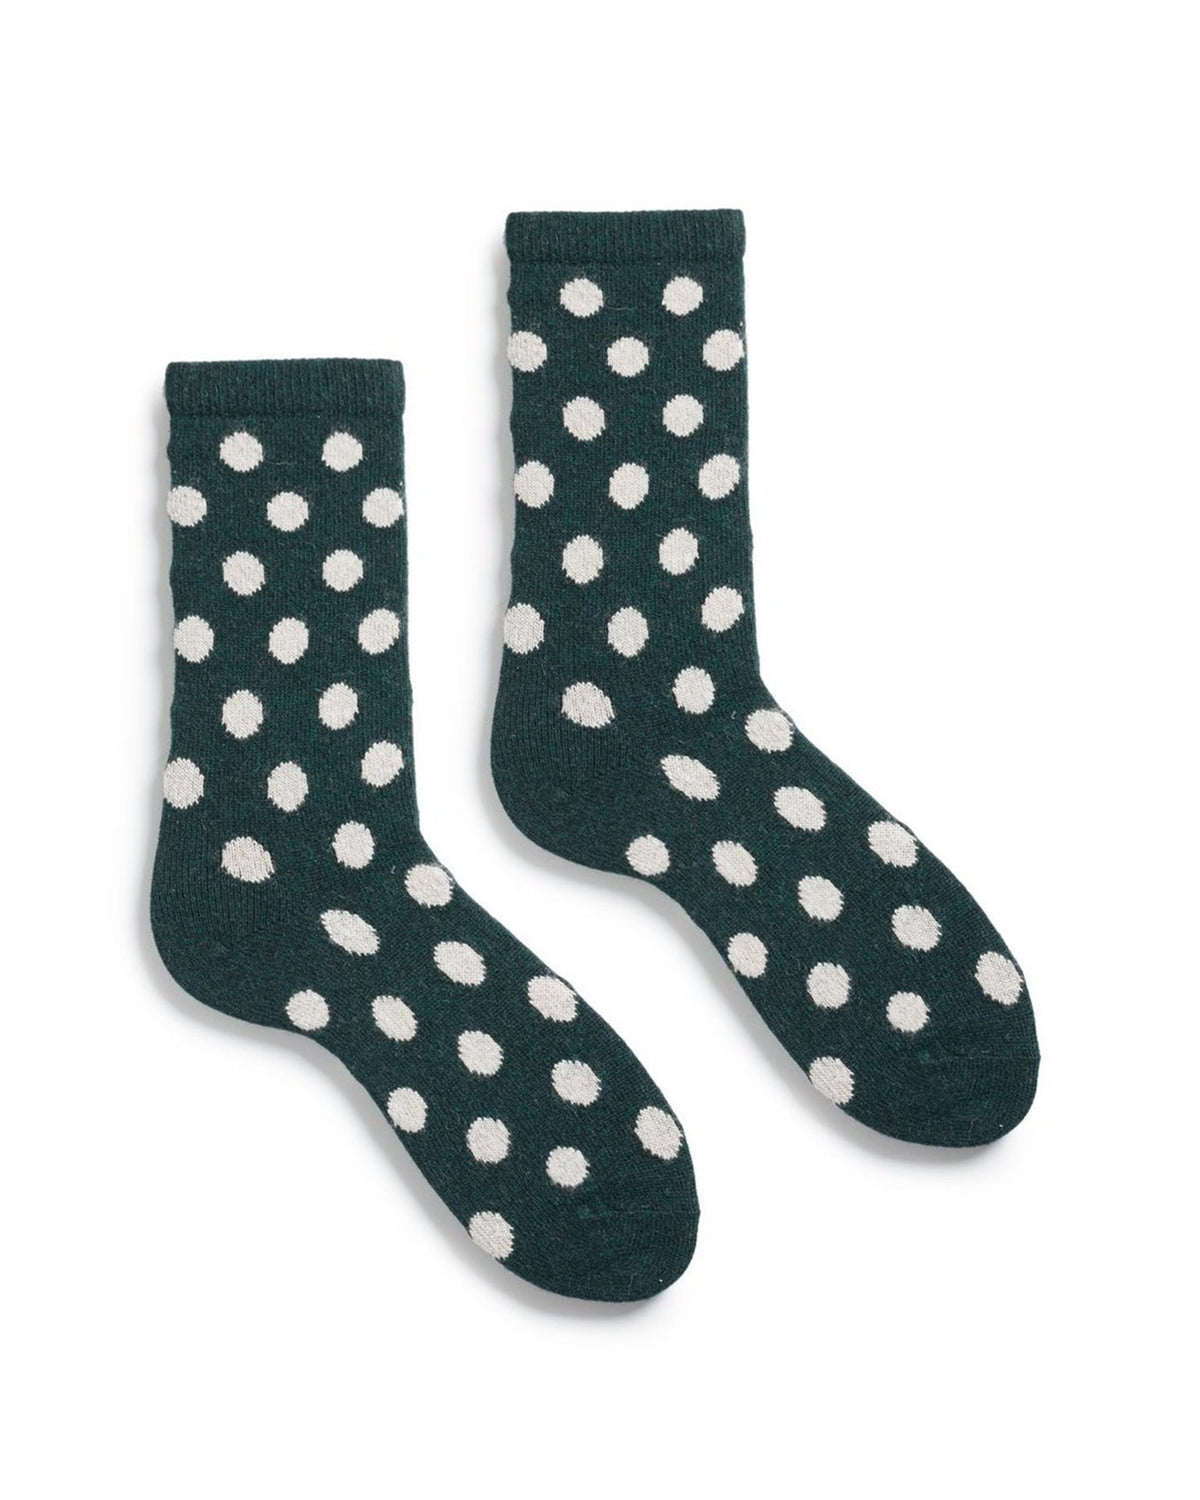 Lisa B. Accessories Ivy / O/S Dot Socks